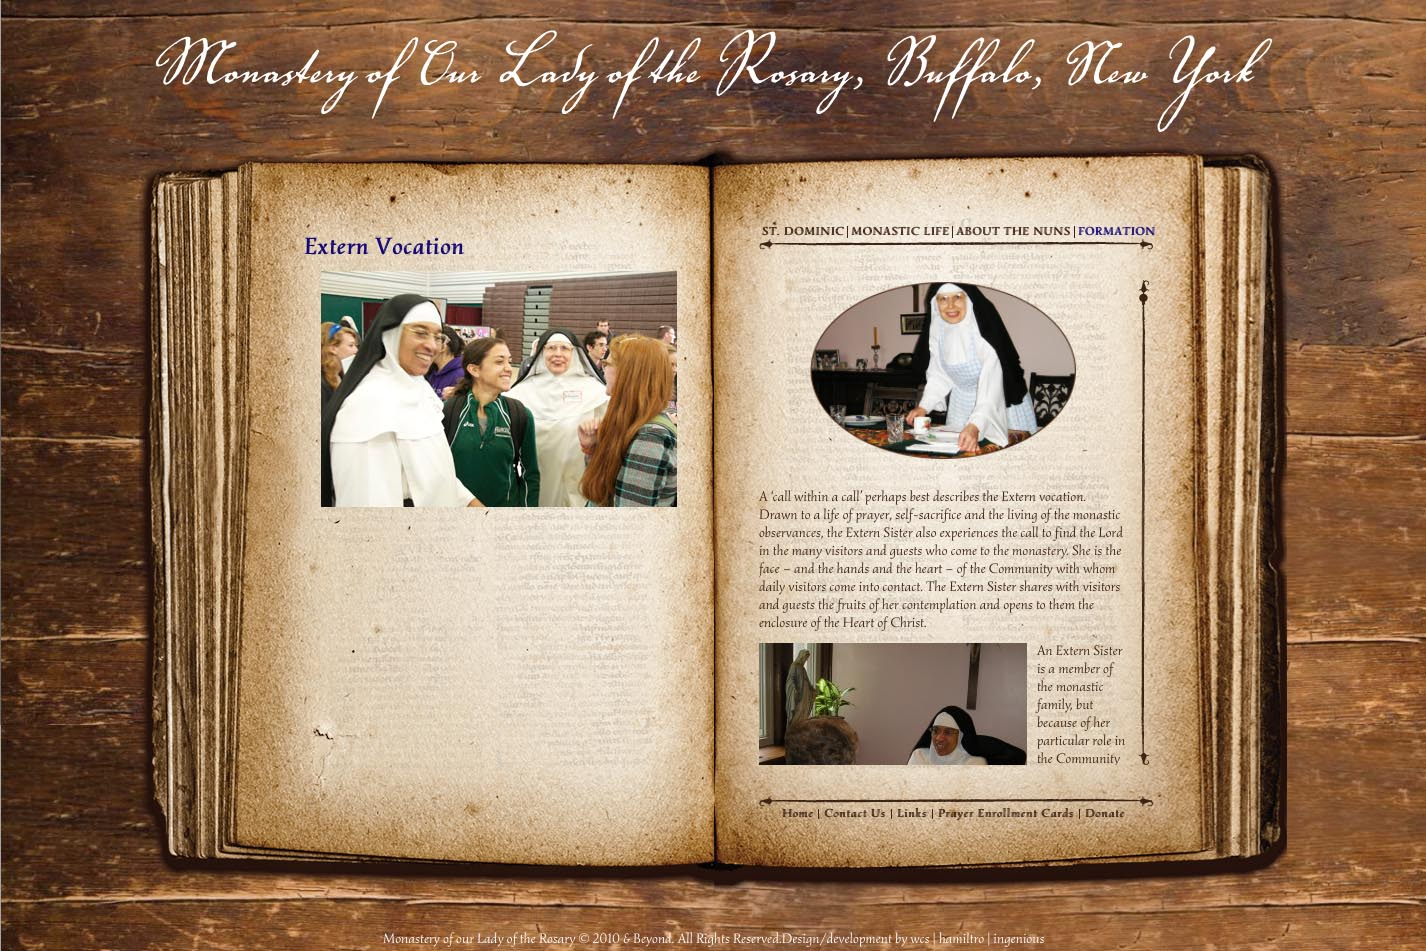 web design for a monastery - extern vocation page